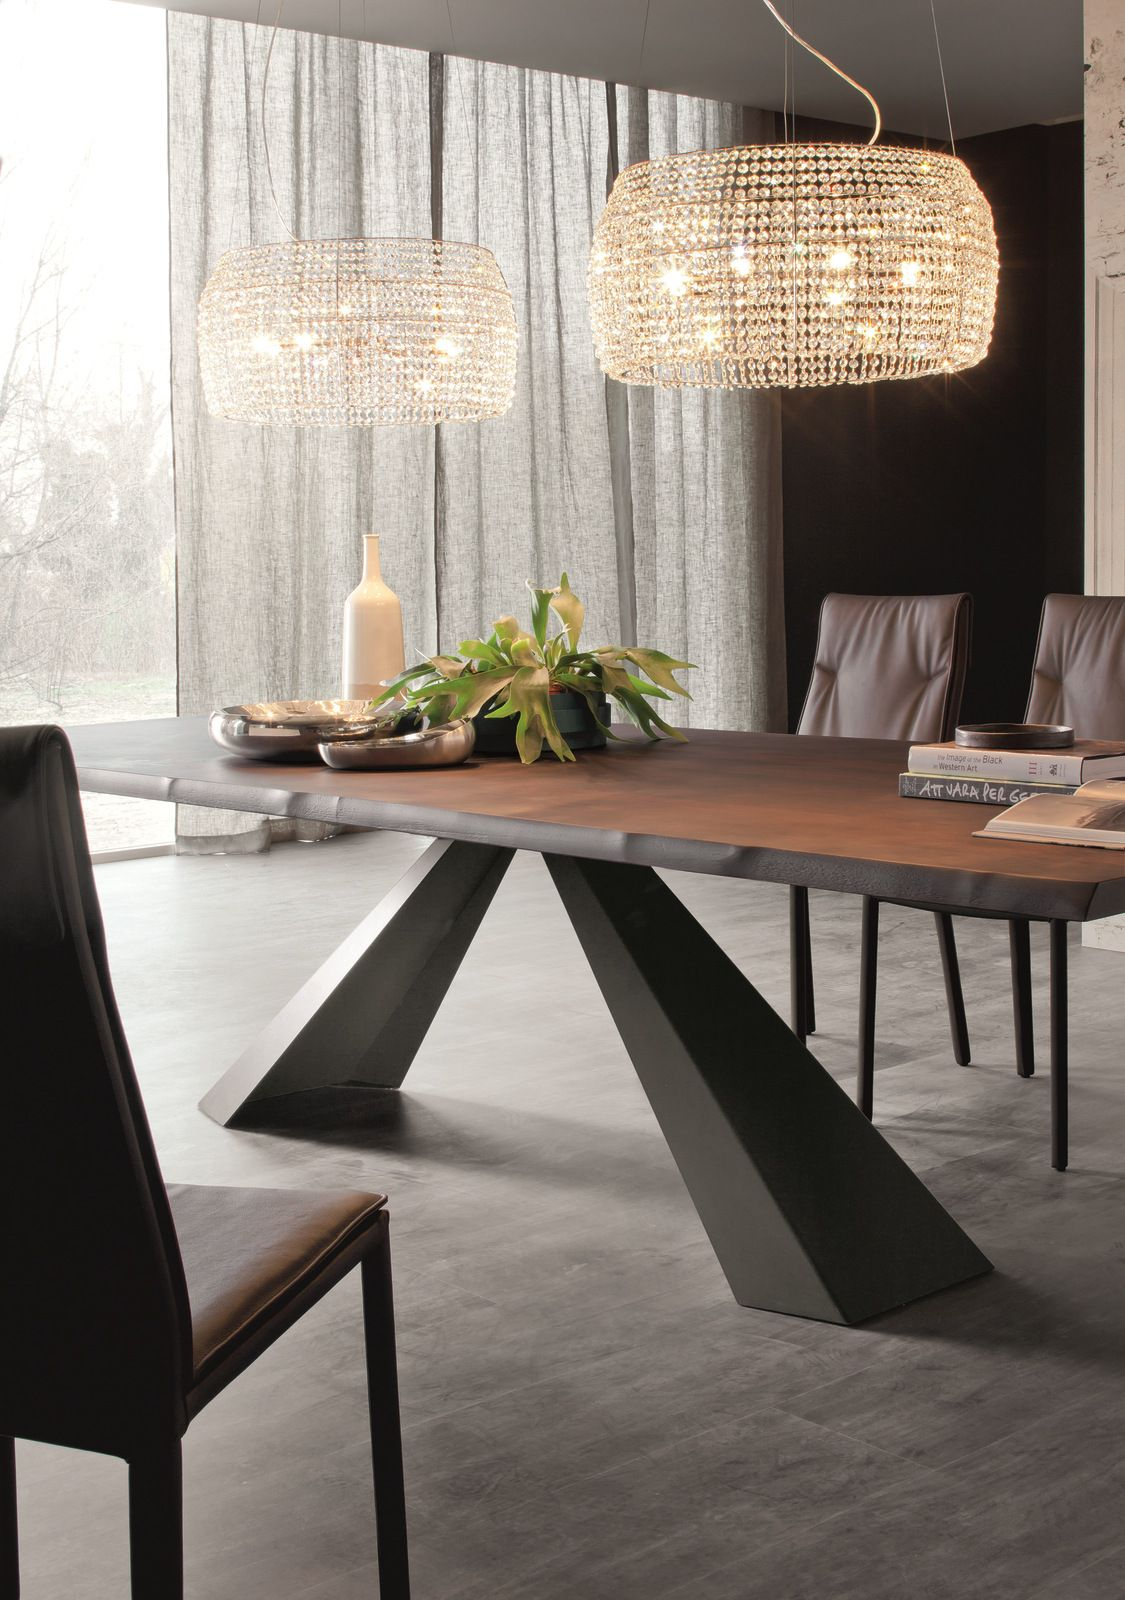 RECTANGULAR WOODEN TABLE ELIOT WOOD ELIOT COLLECTION BY CATTELAN ITALIA |  DESIGN GIORGIO CATTELAN